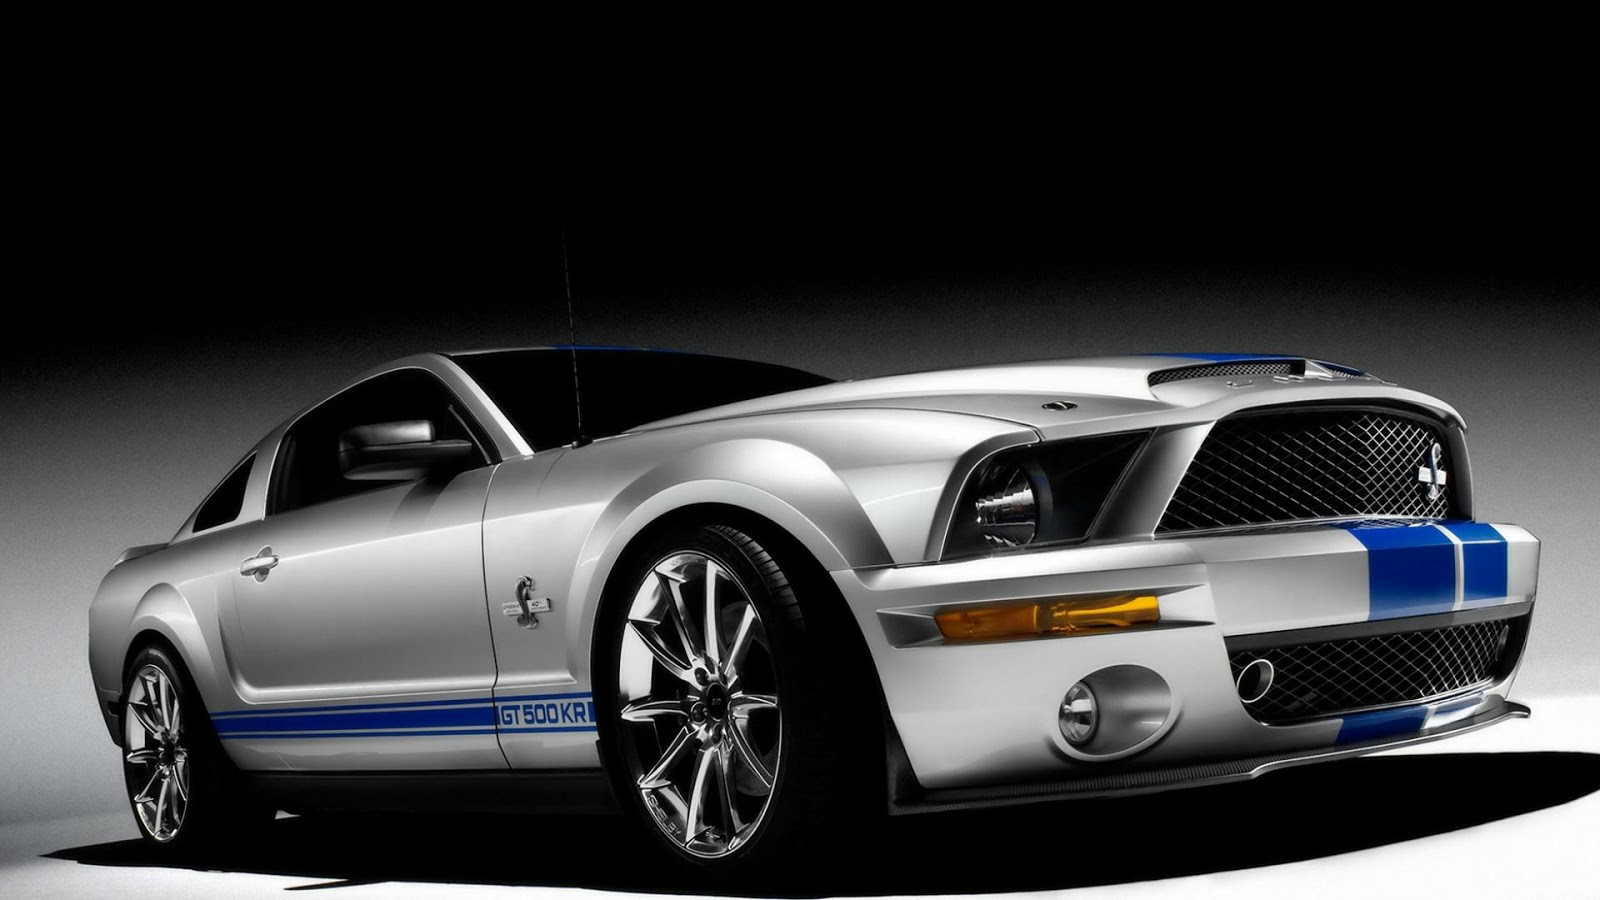 D Car Live Wallpaper Android Apps On Google Play 1600x900